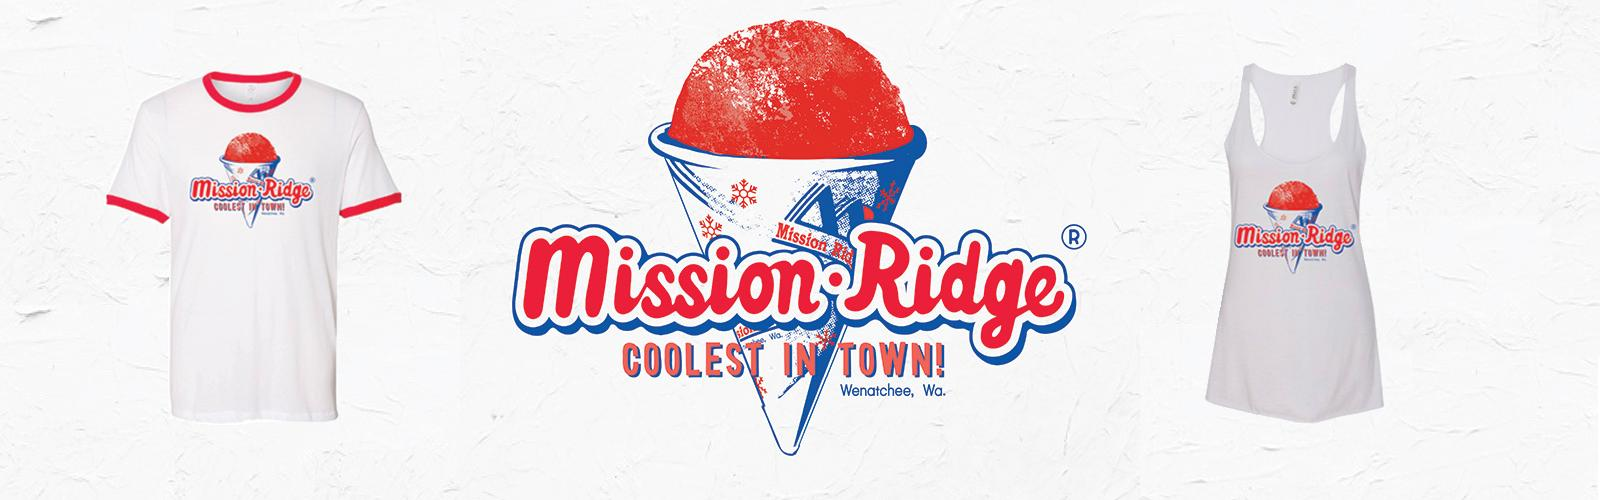 "Snow cone graphic ""Mission Ridge, Coolest In Town"" with apparel beside"